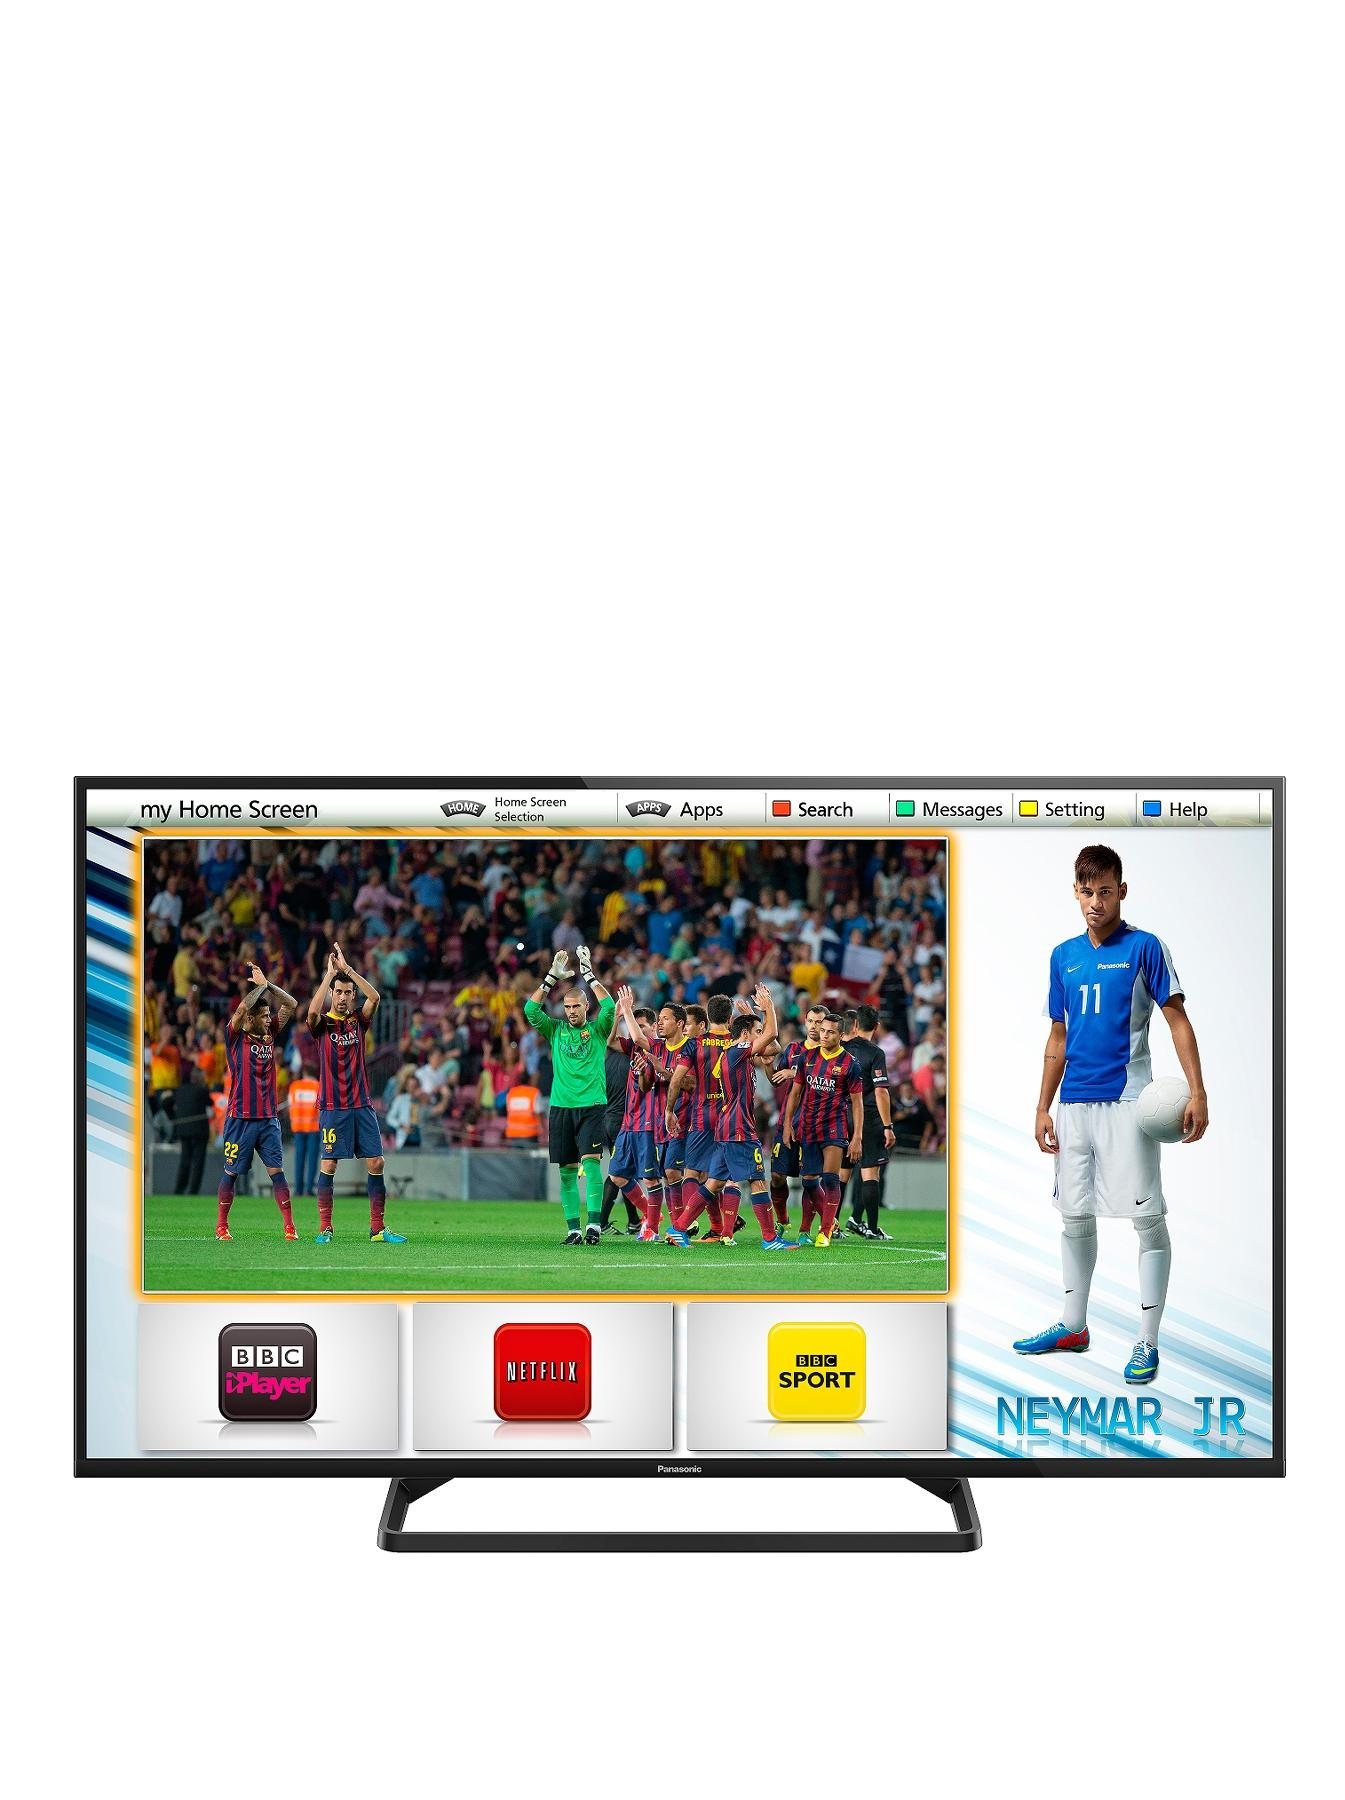 Panasonic TX-50AS500B 50-inch Widescreen 1080p Full HD Smart LED TV with Built-In Wi-Fi and Freeview